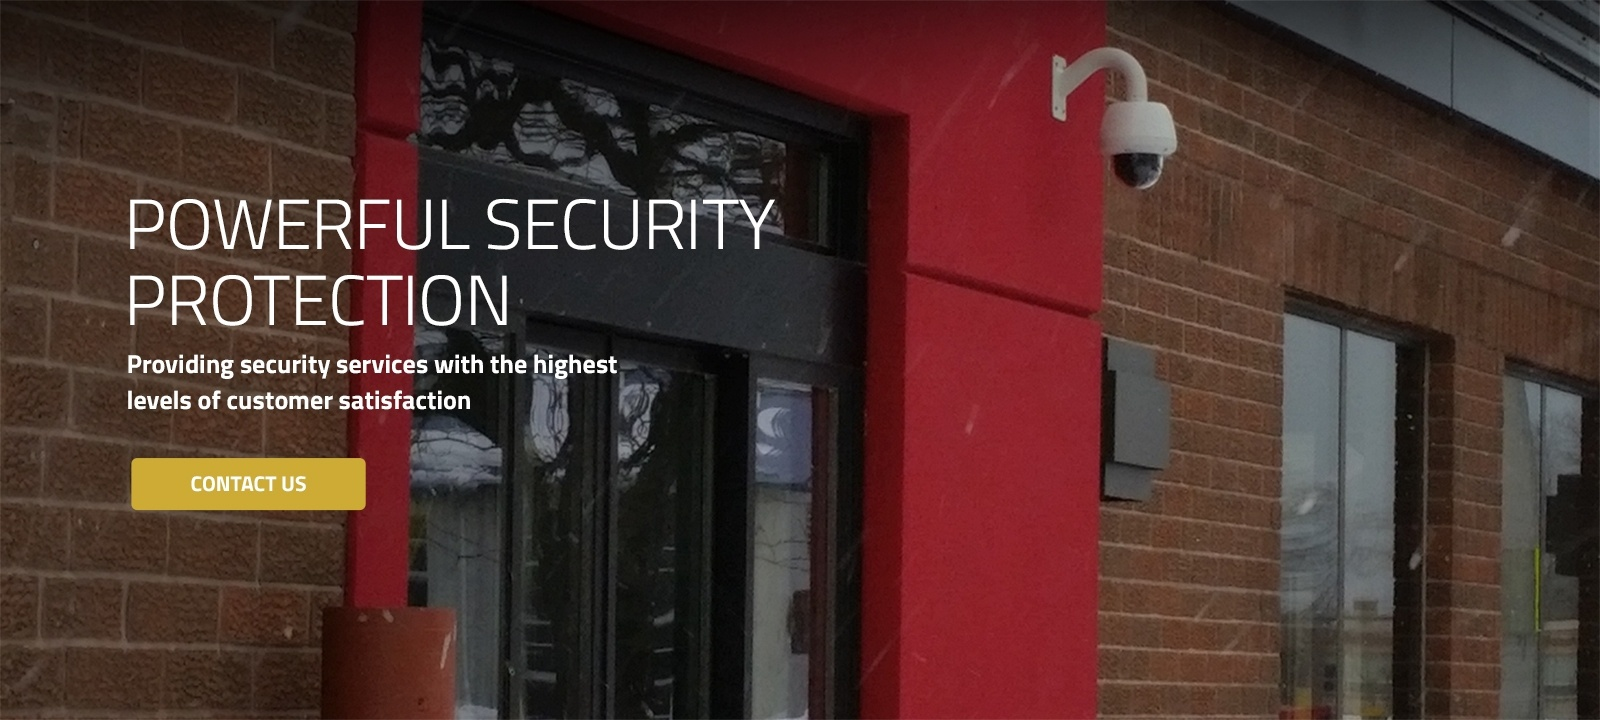 Security Systems in Toronto